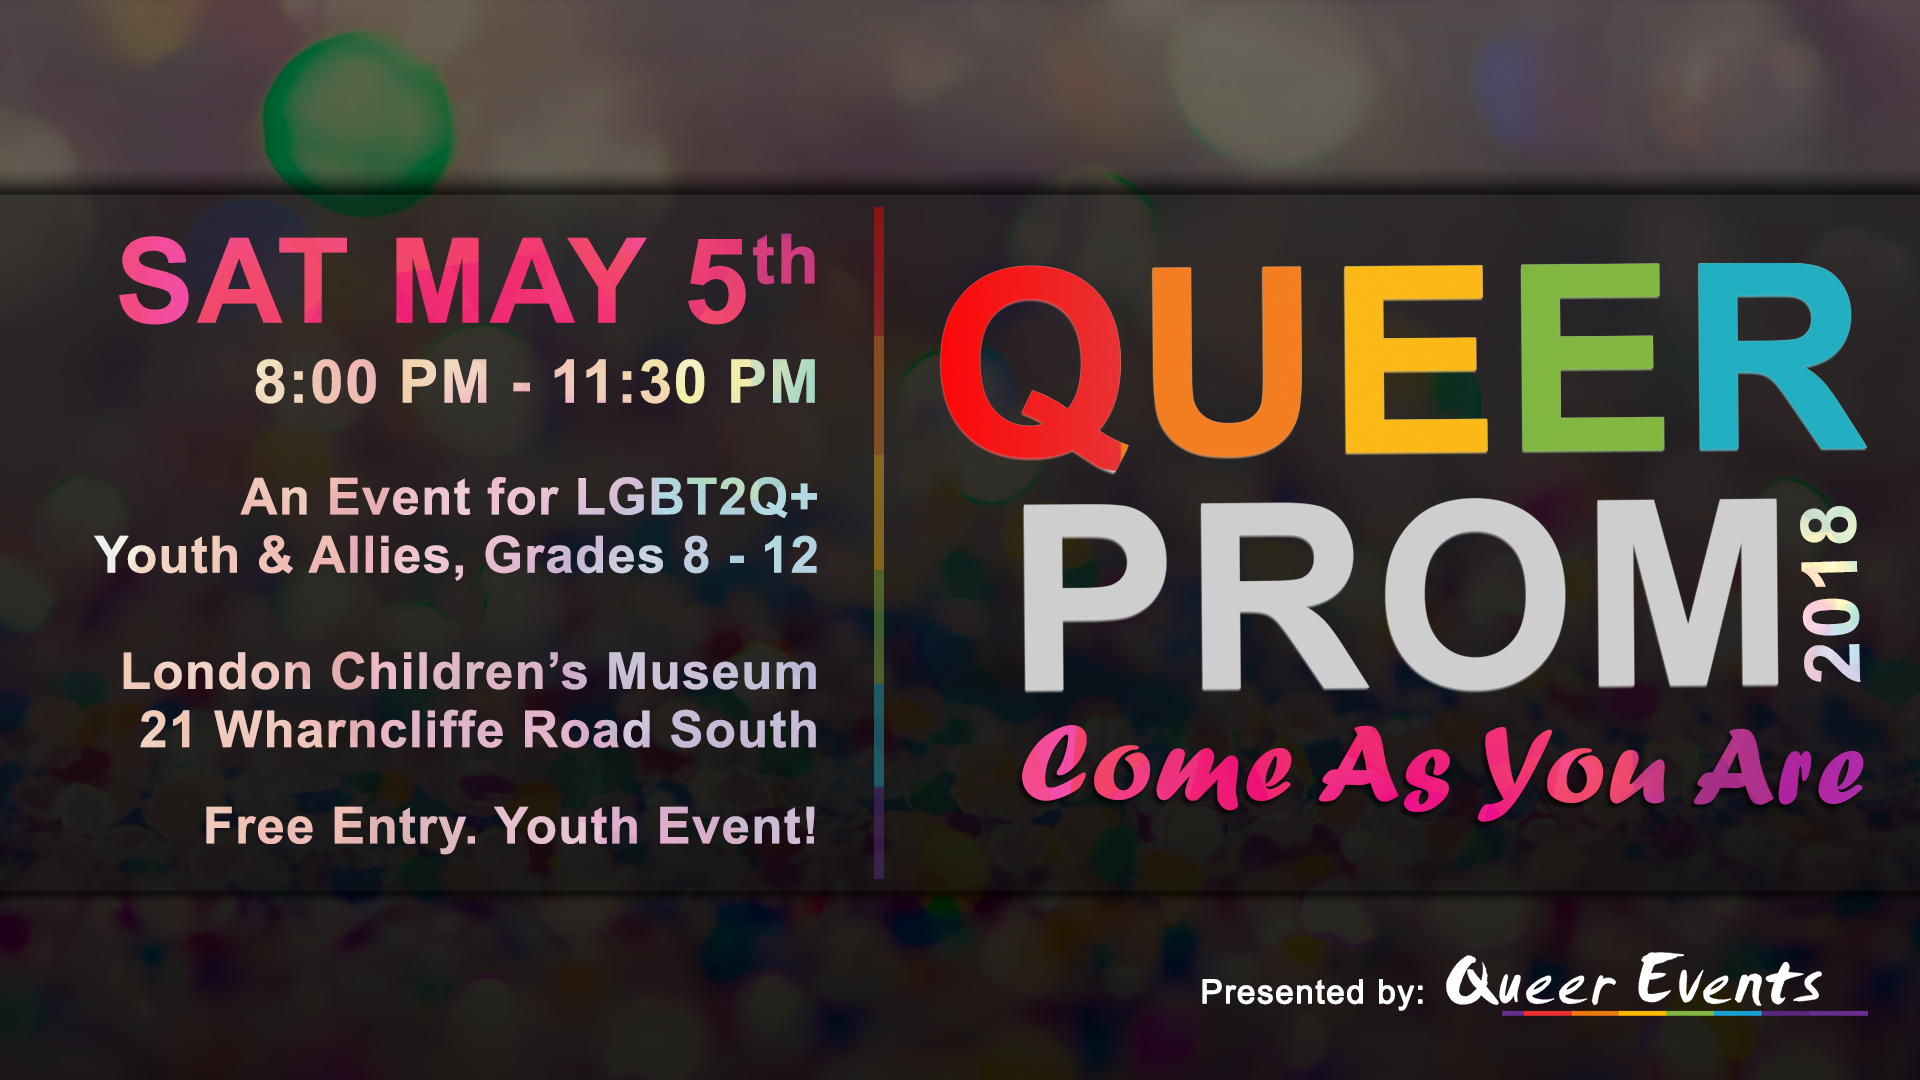 QueerEvents.ca - Queer Prom 2018 - event banner